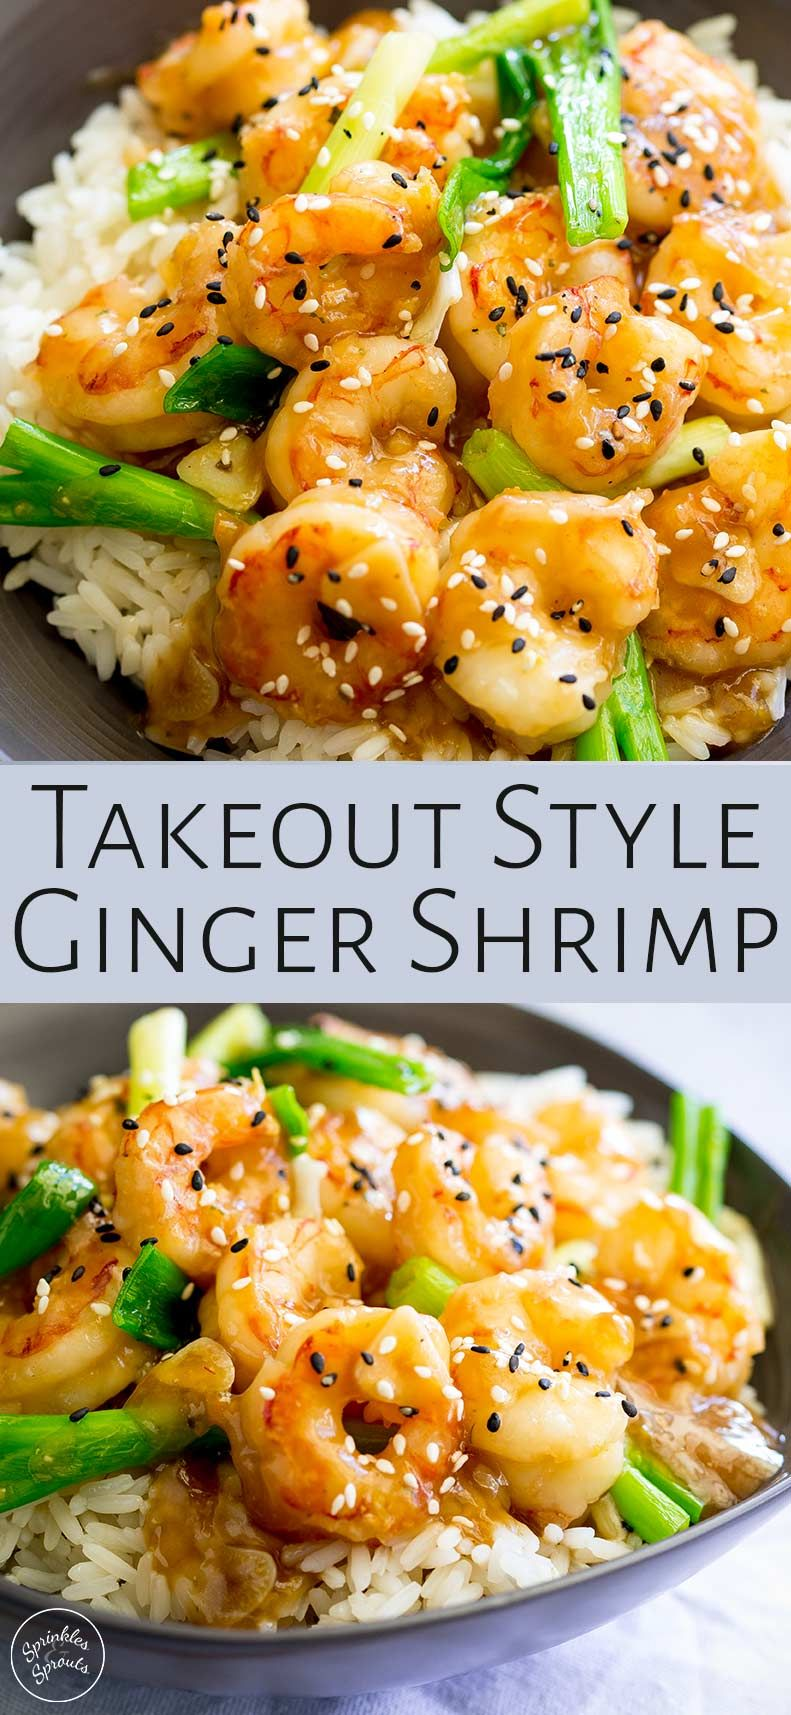 Takeout Style Ginger Shrimp Stir Fry | Sprinkles and Sprouts